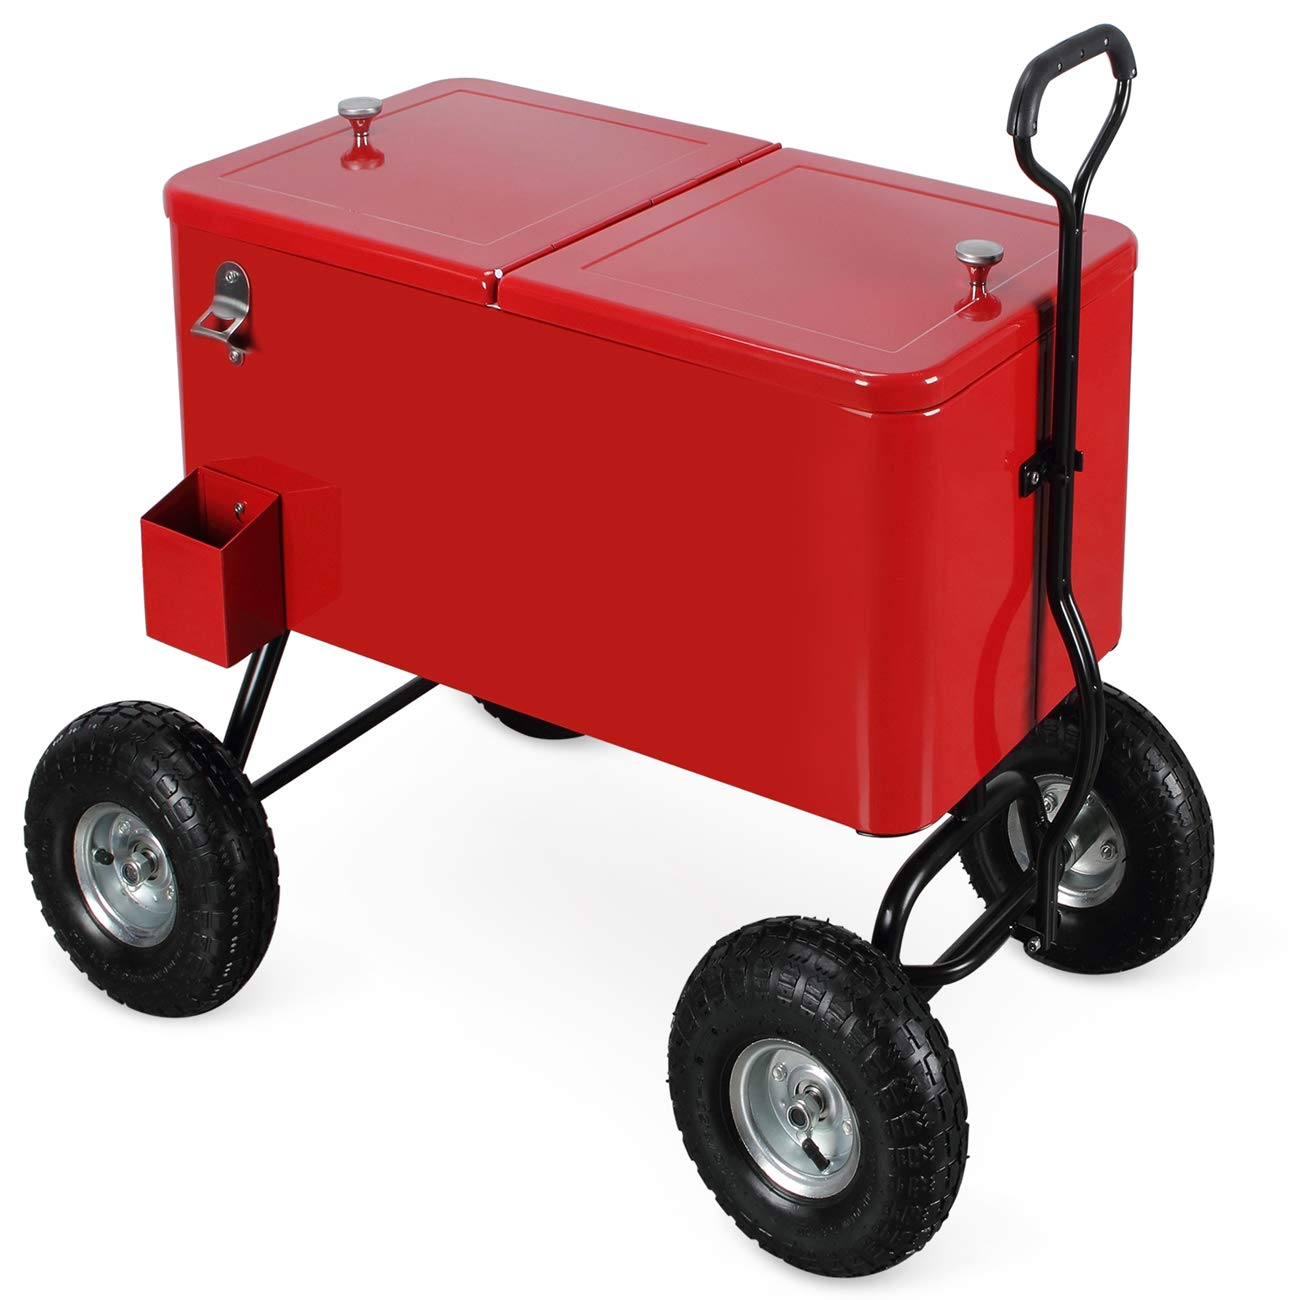 Belleze Outdoor 80 Qt Rolling Beverages Ice Chest Beach Party Patio Backyard Wagon w/ 10' Terrain Wheels, Red by Belleze